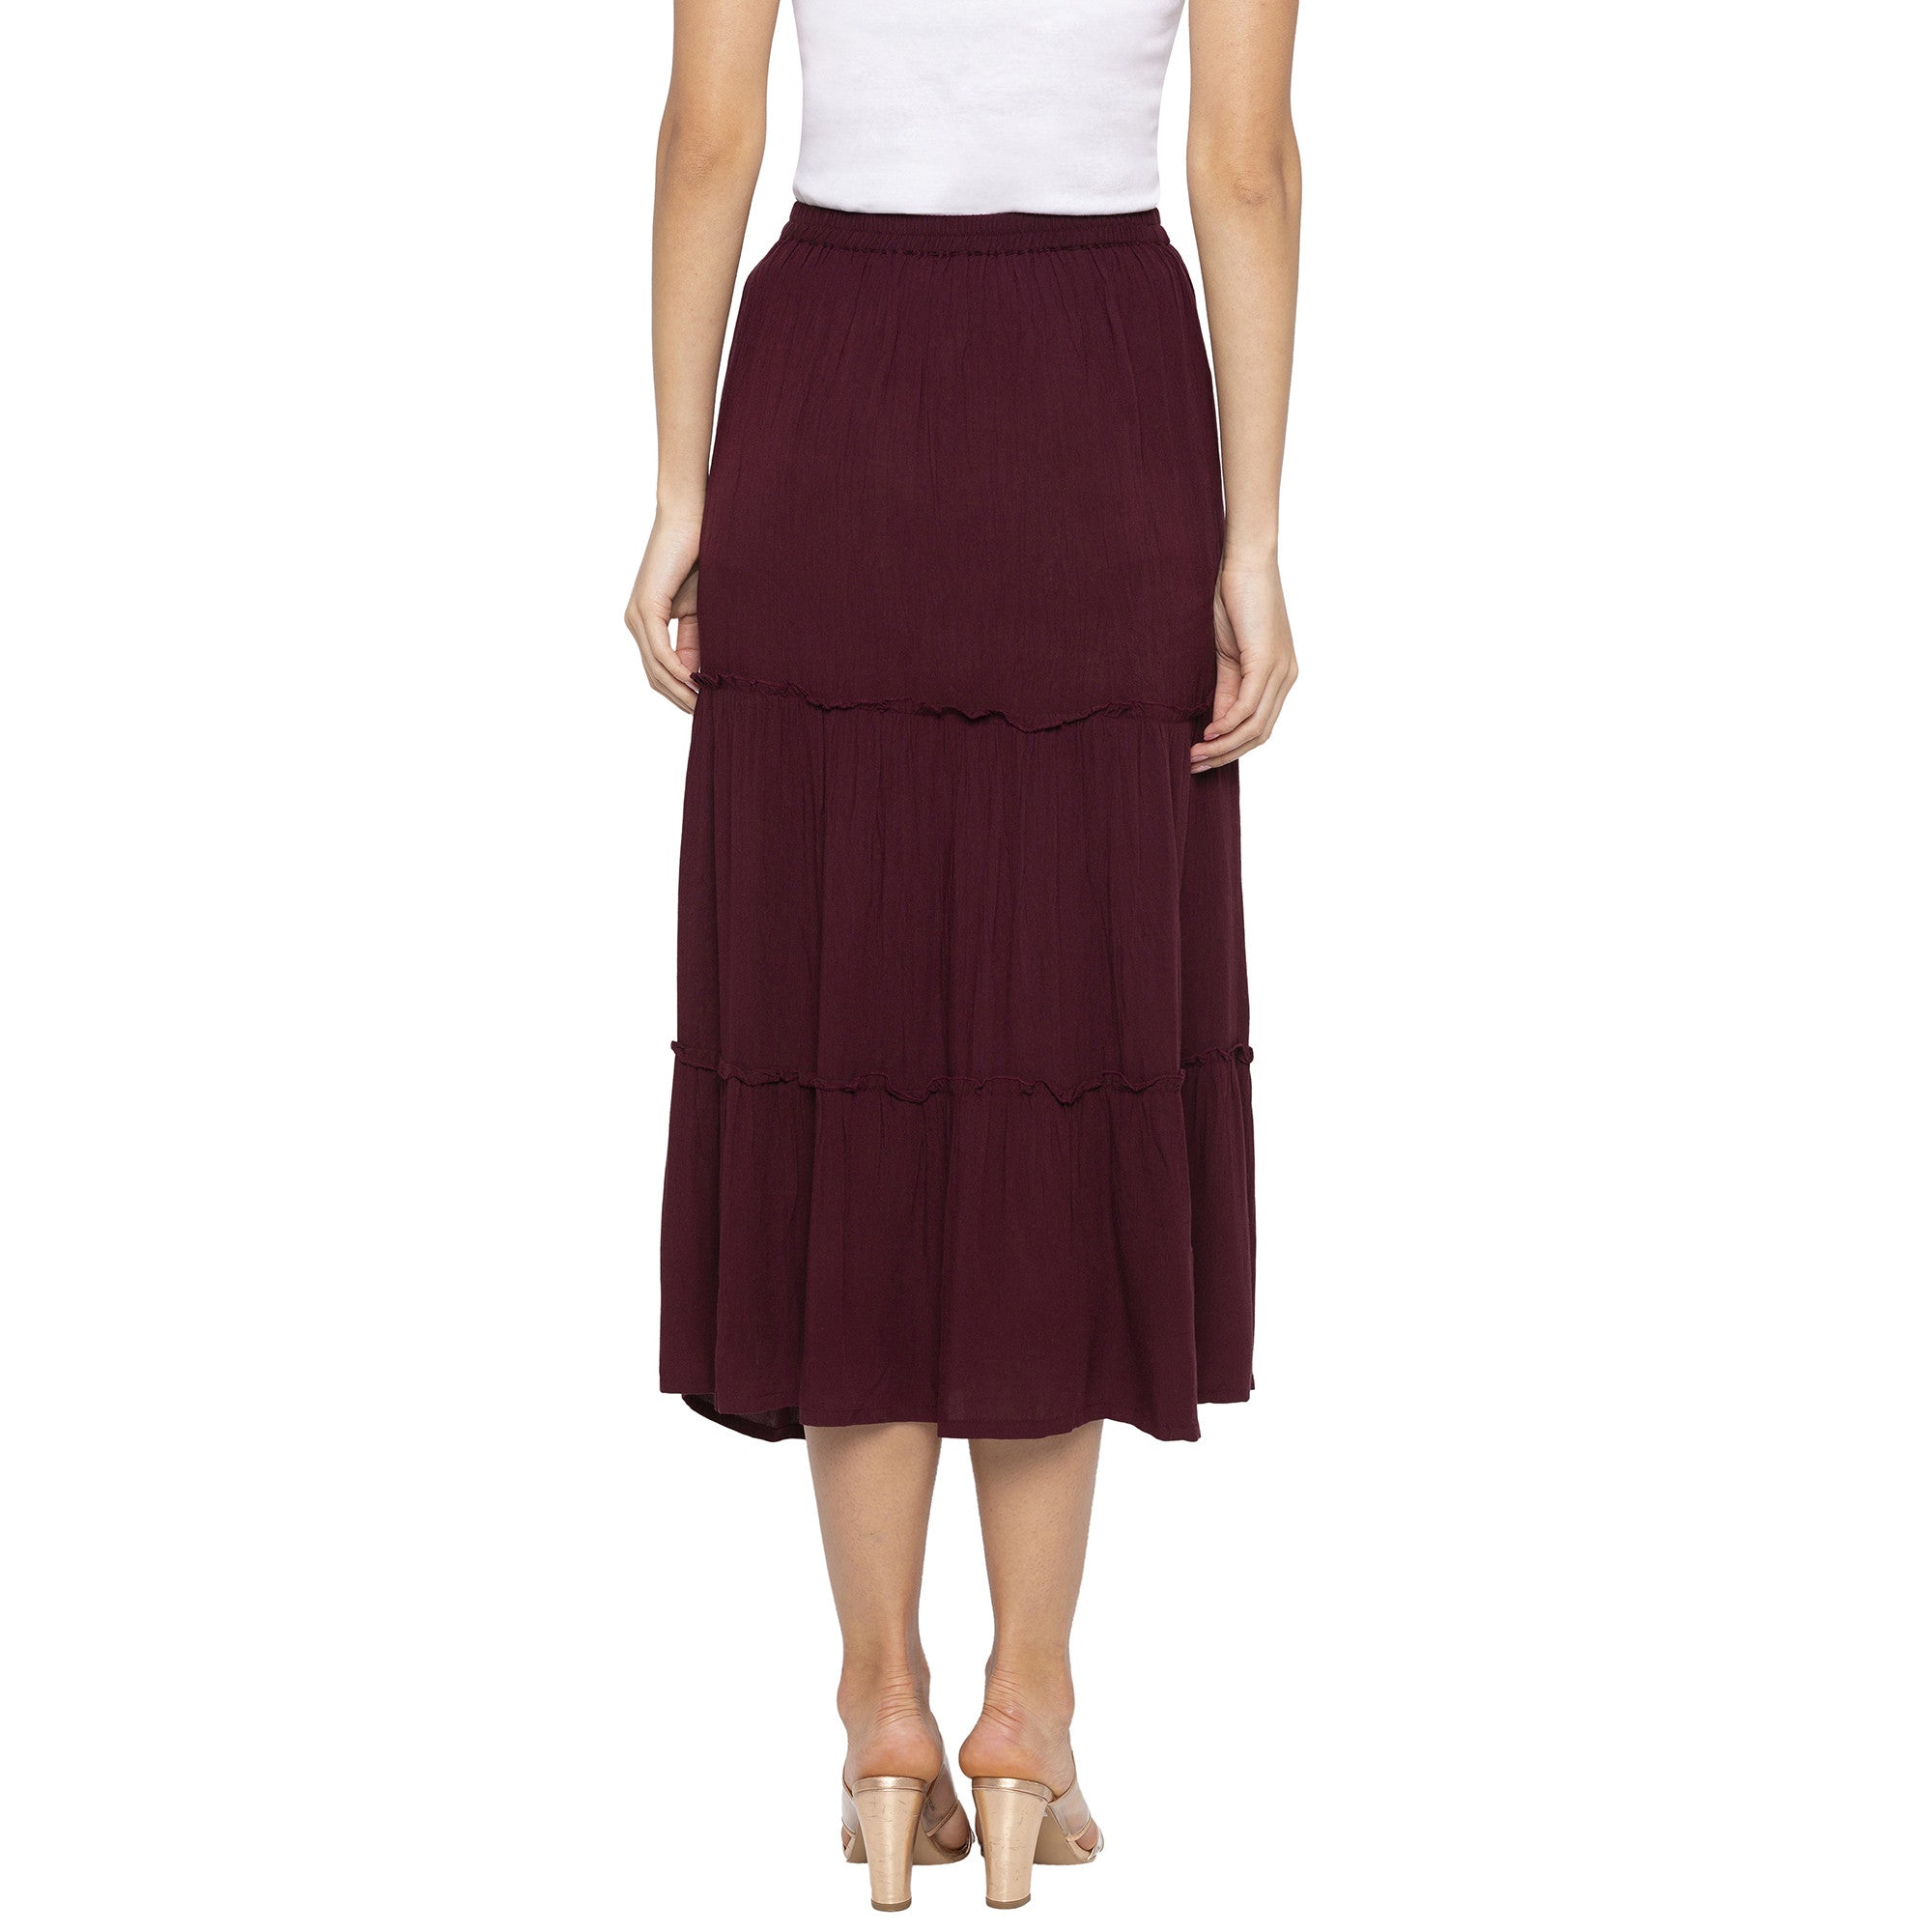 Burgundy Solid Skirts-3